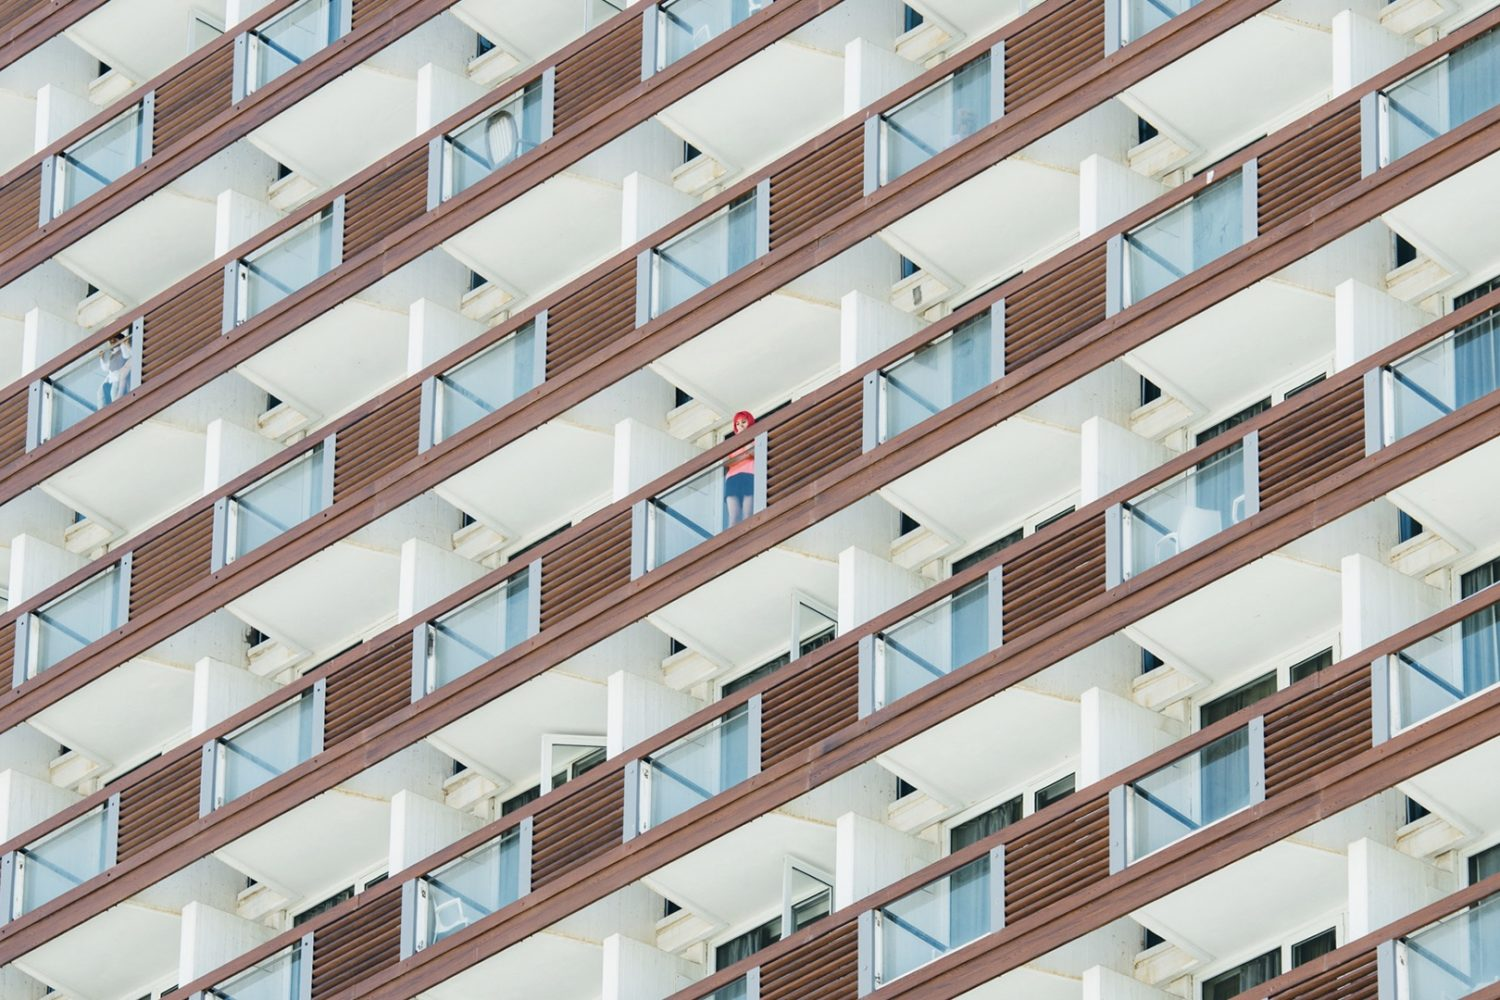 How to photograph architecture: The complete guide